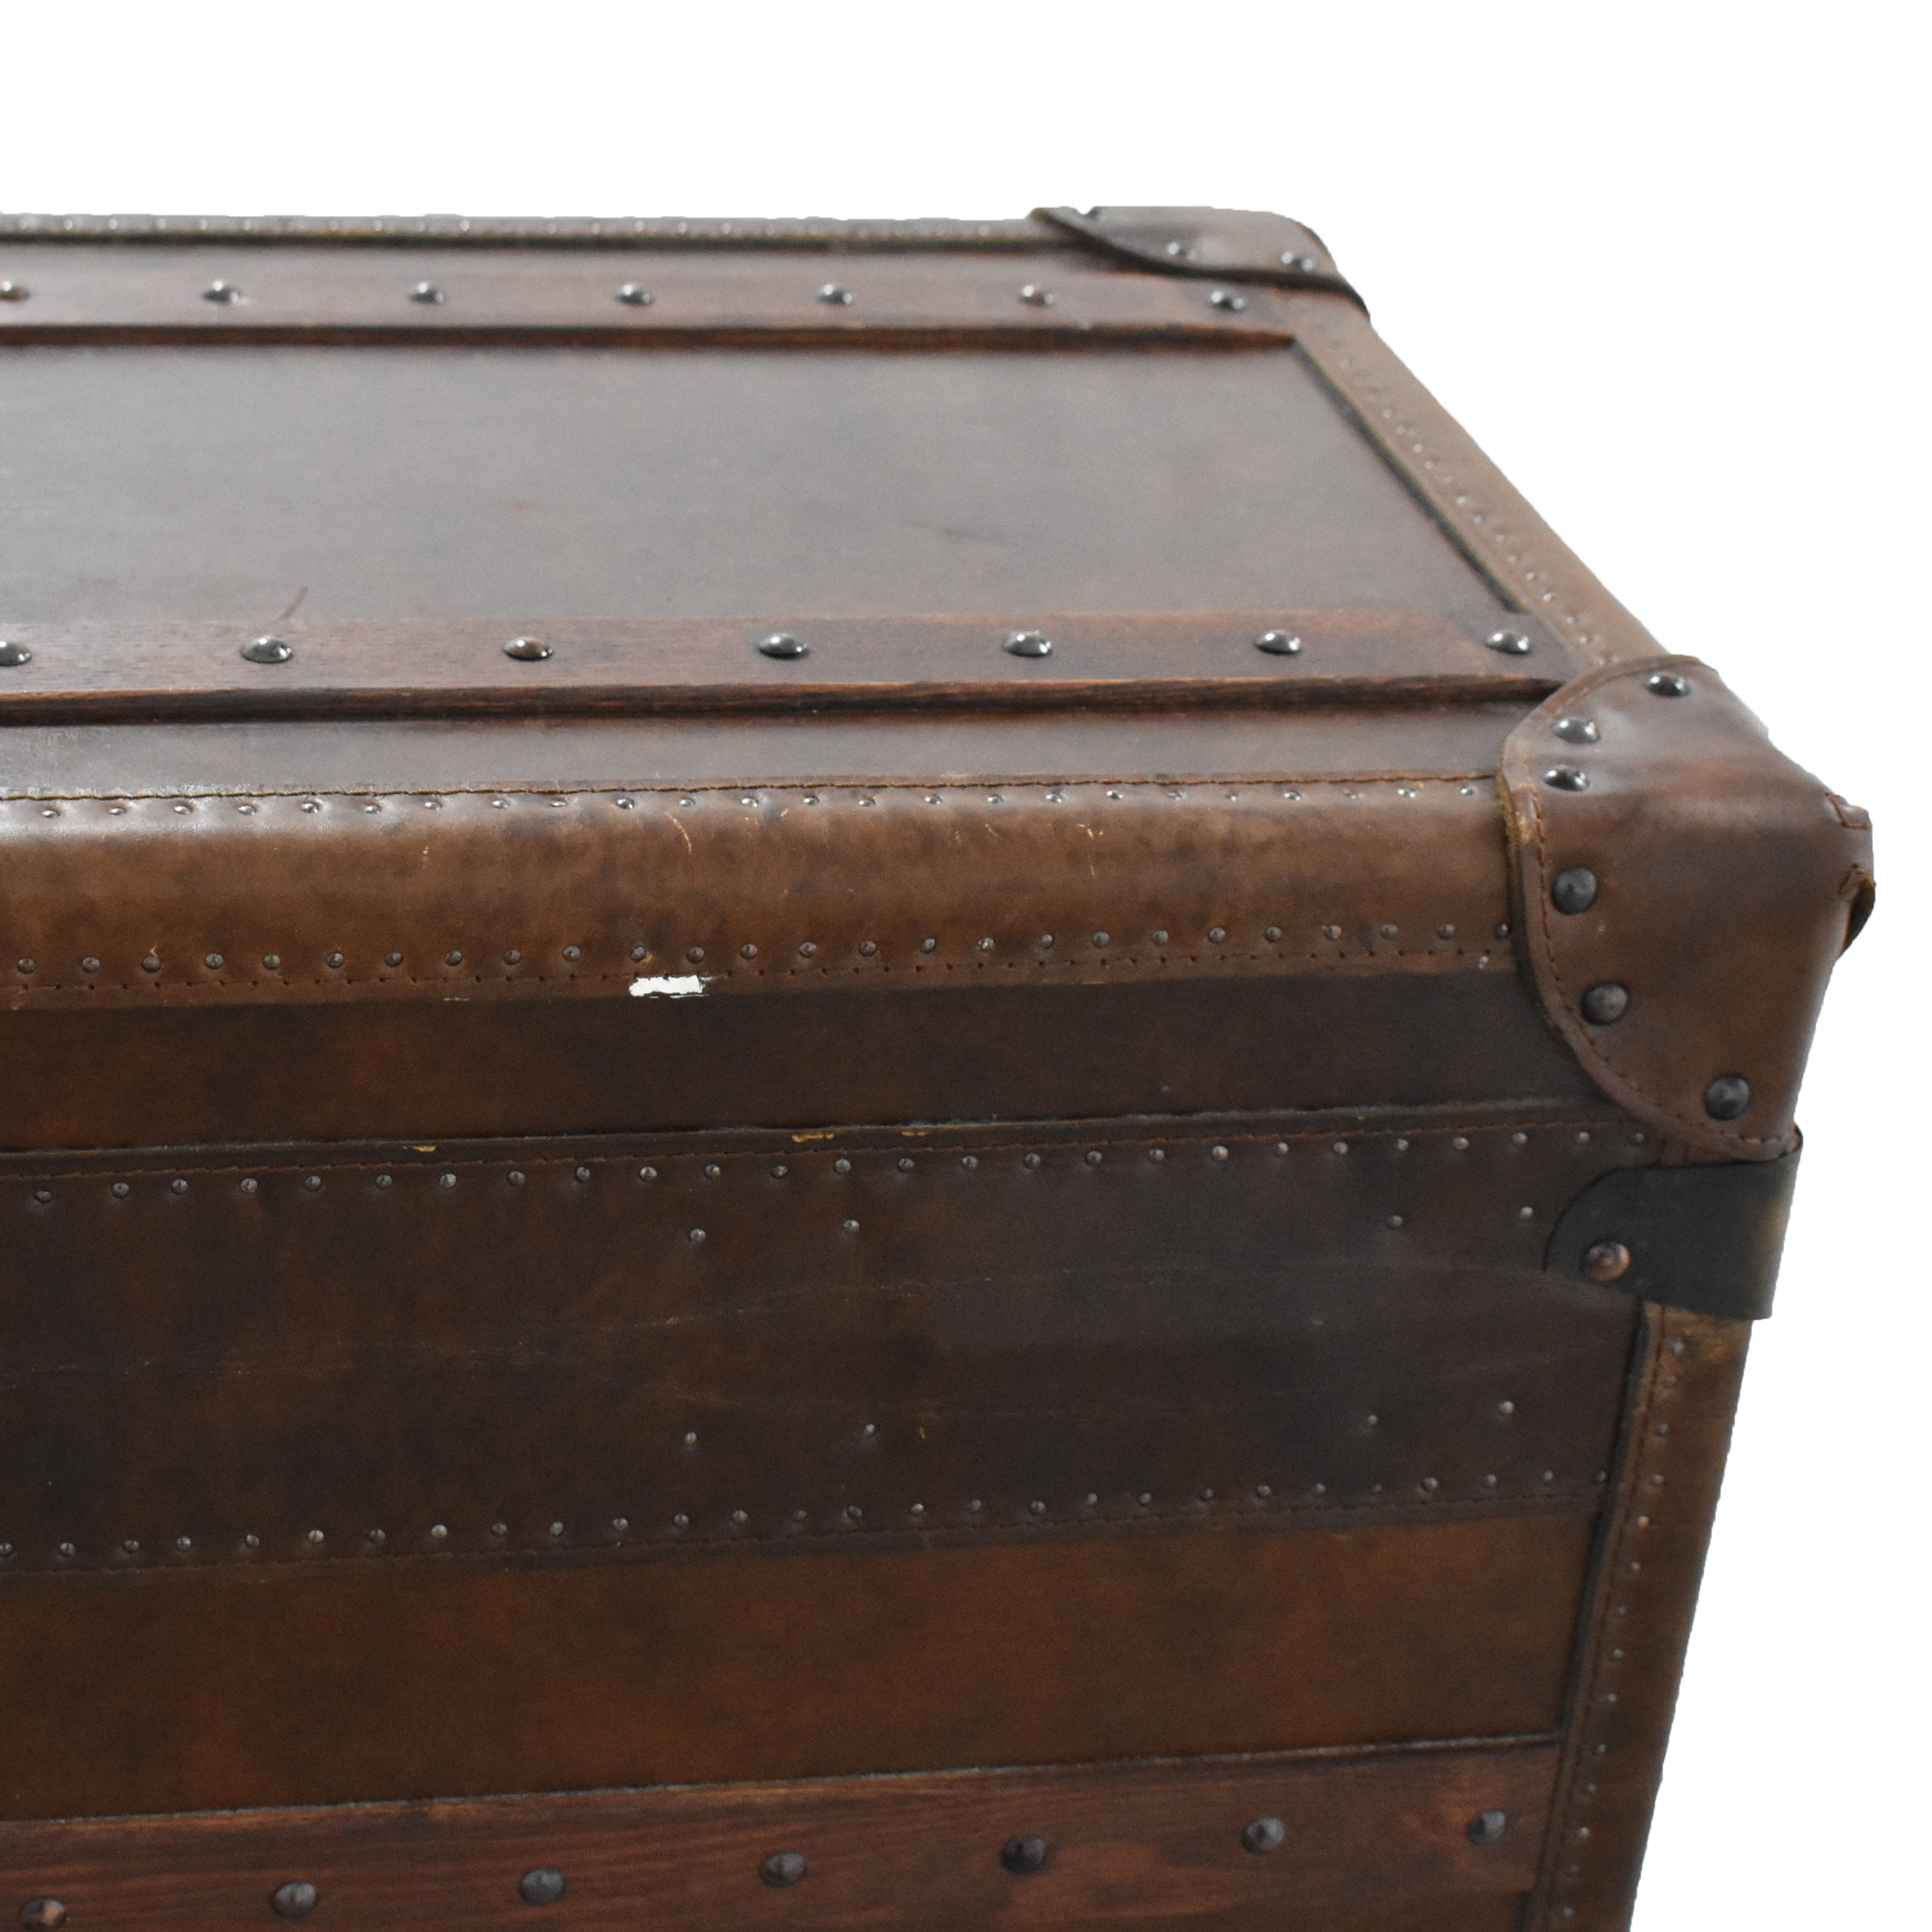 Restoration Hardware Restoration Hardware Mayfair Steamer Trunk Low Chest ct